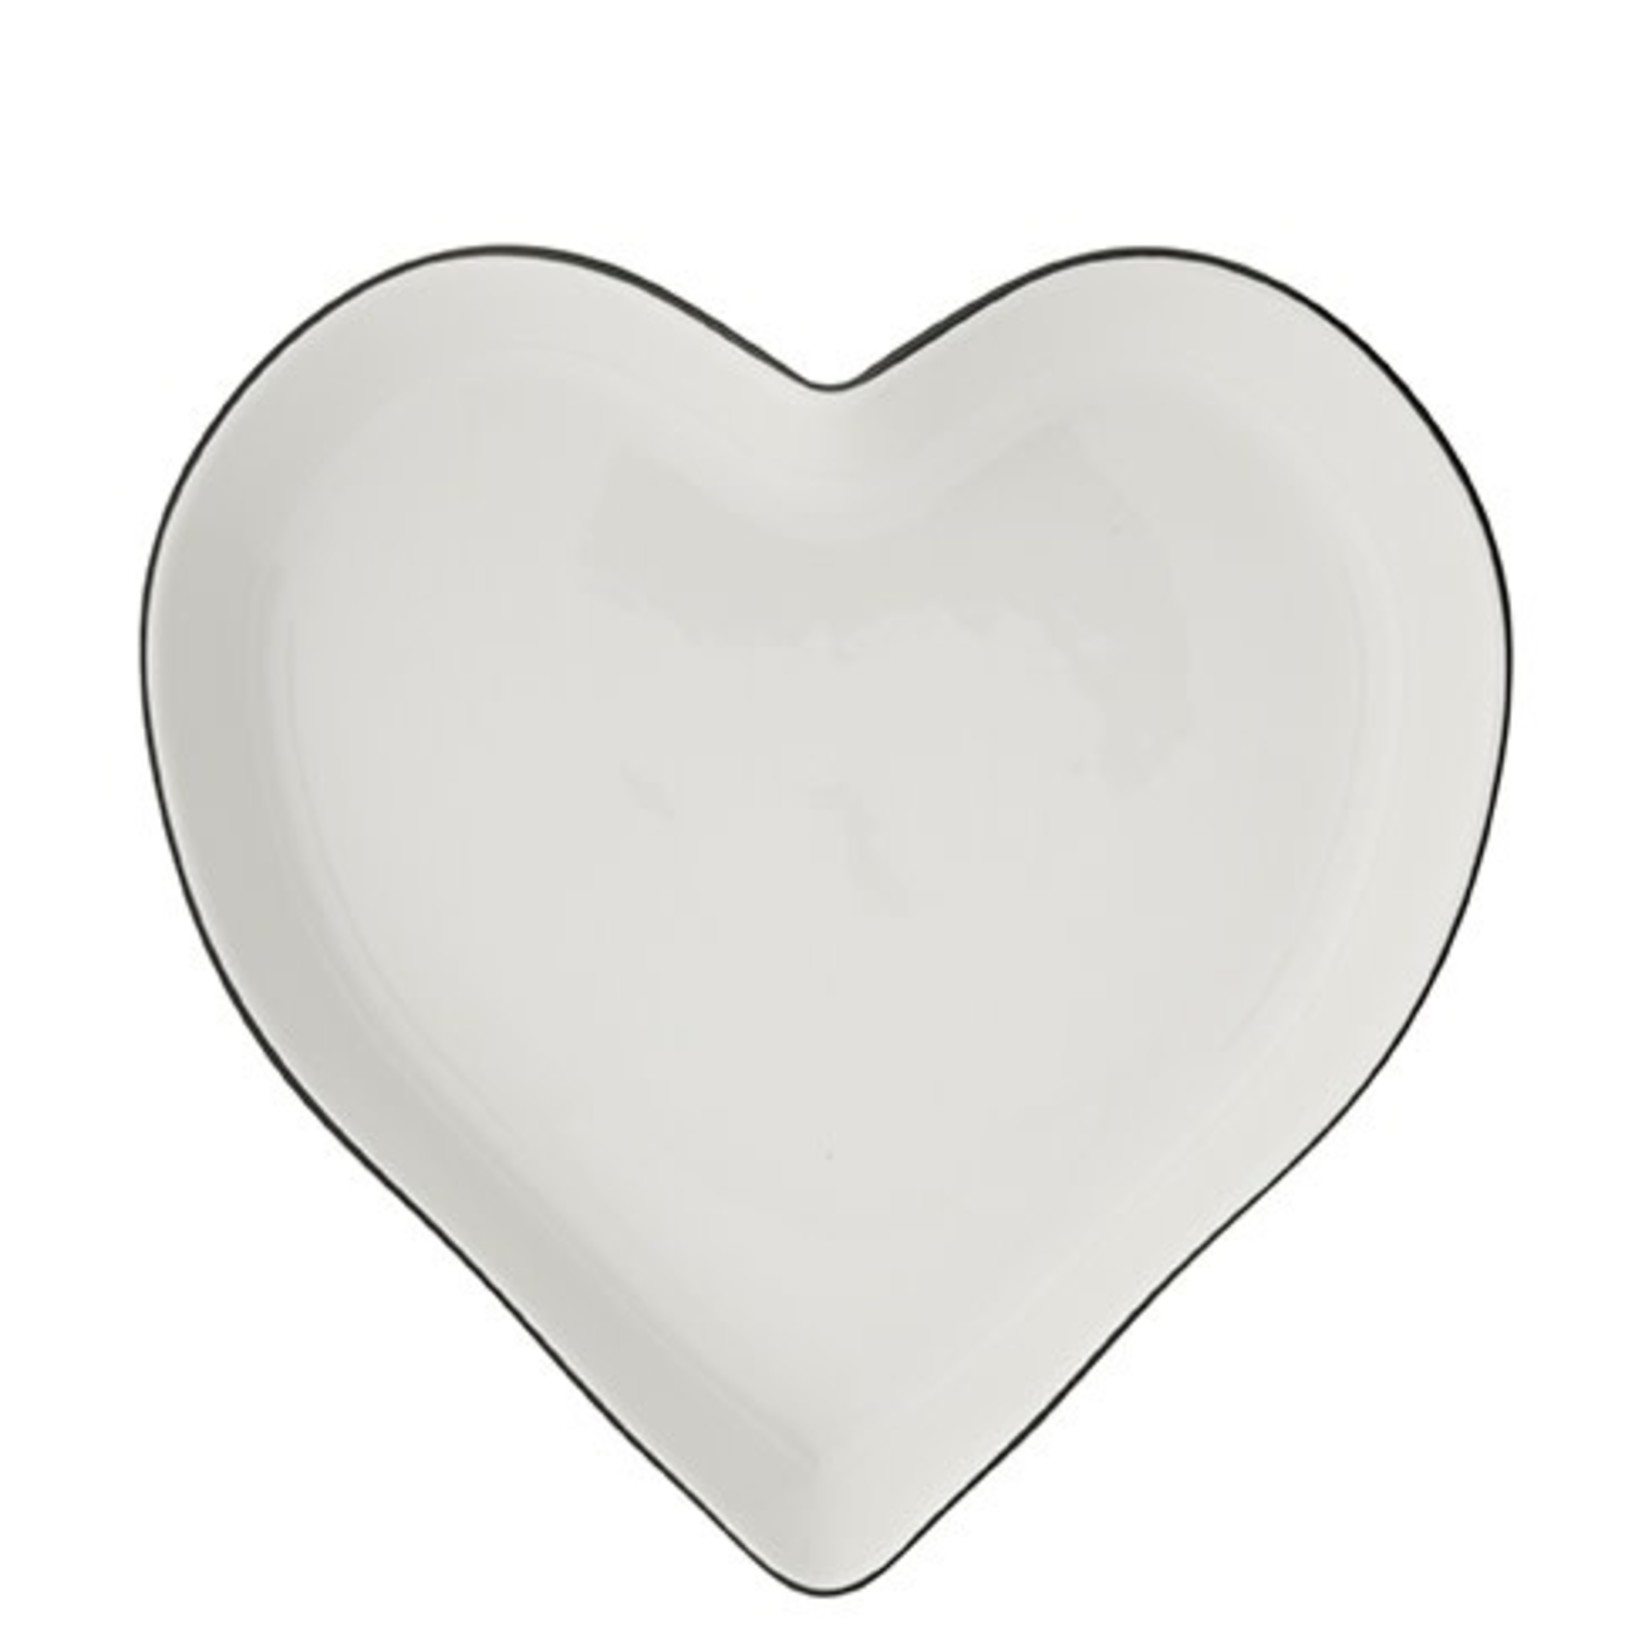 Bastion Collections Oven Dish White small Heart